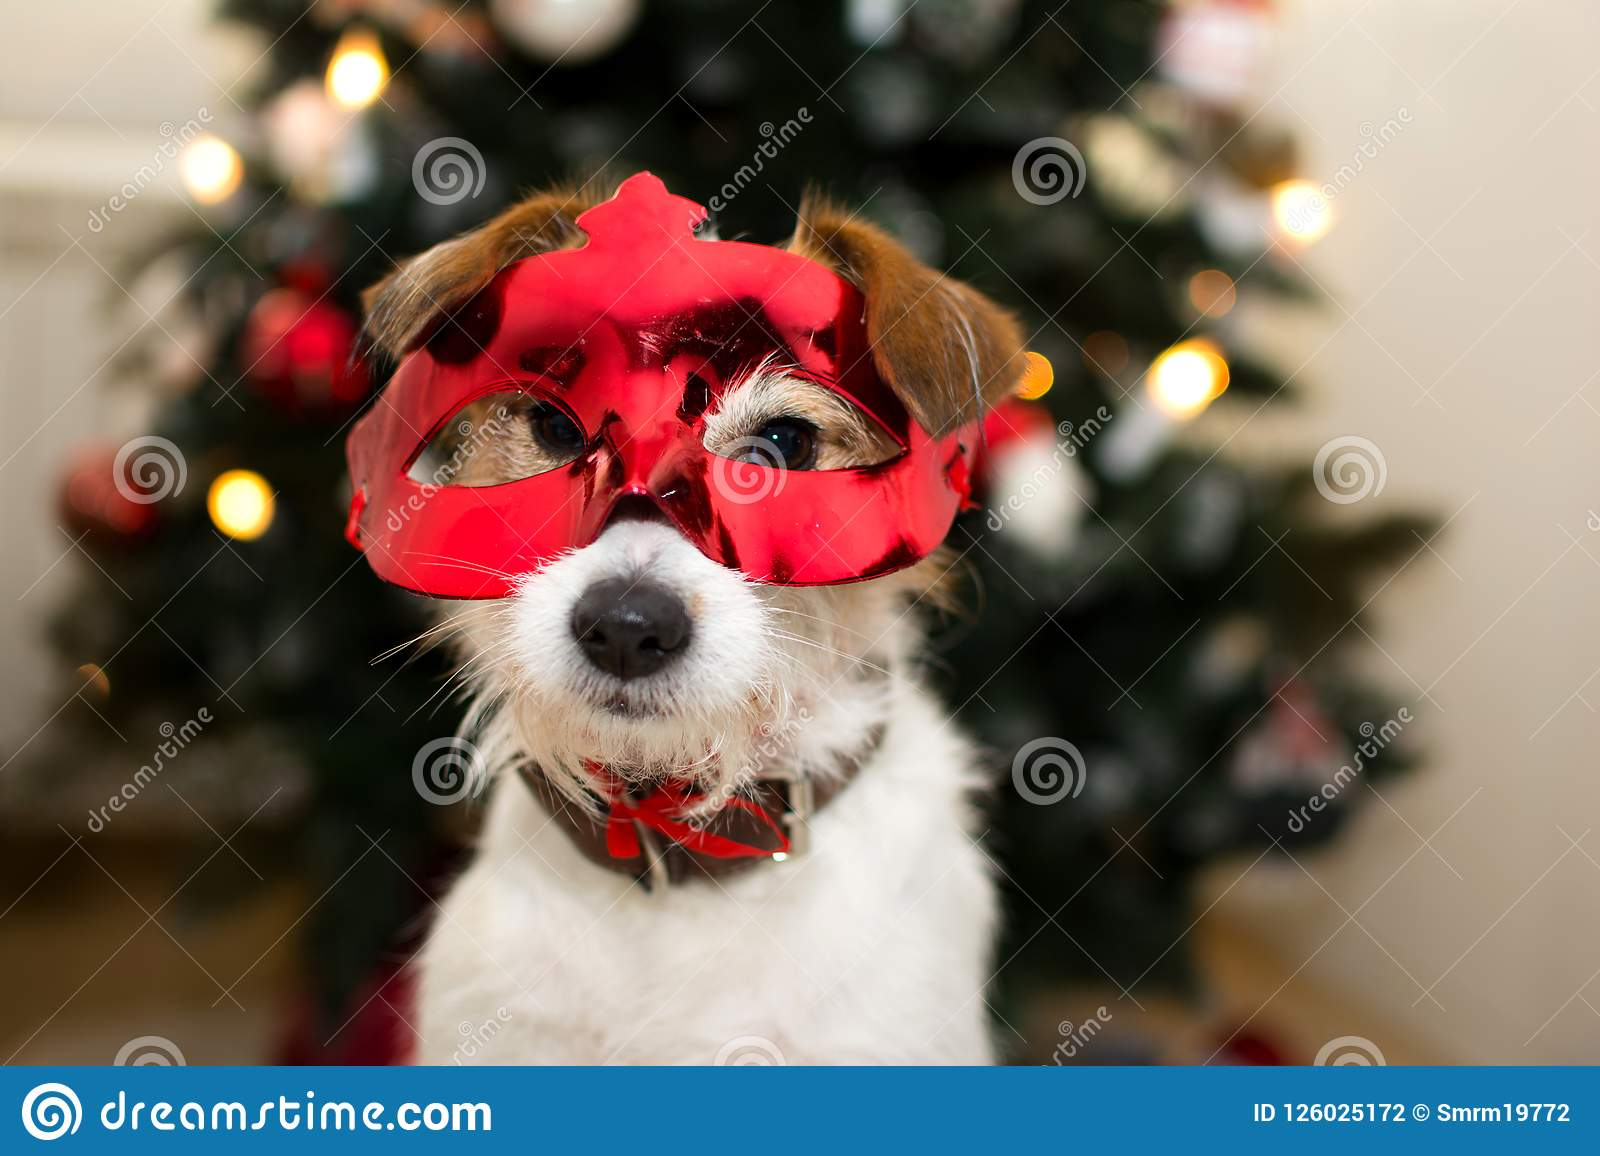 HAPPY NEW YEAR, JACK RUSSELL TERRIER CELEBRATING WITH A RED MASK